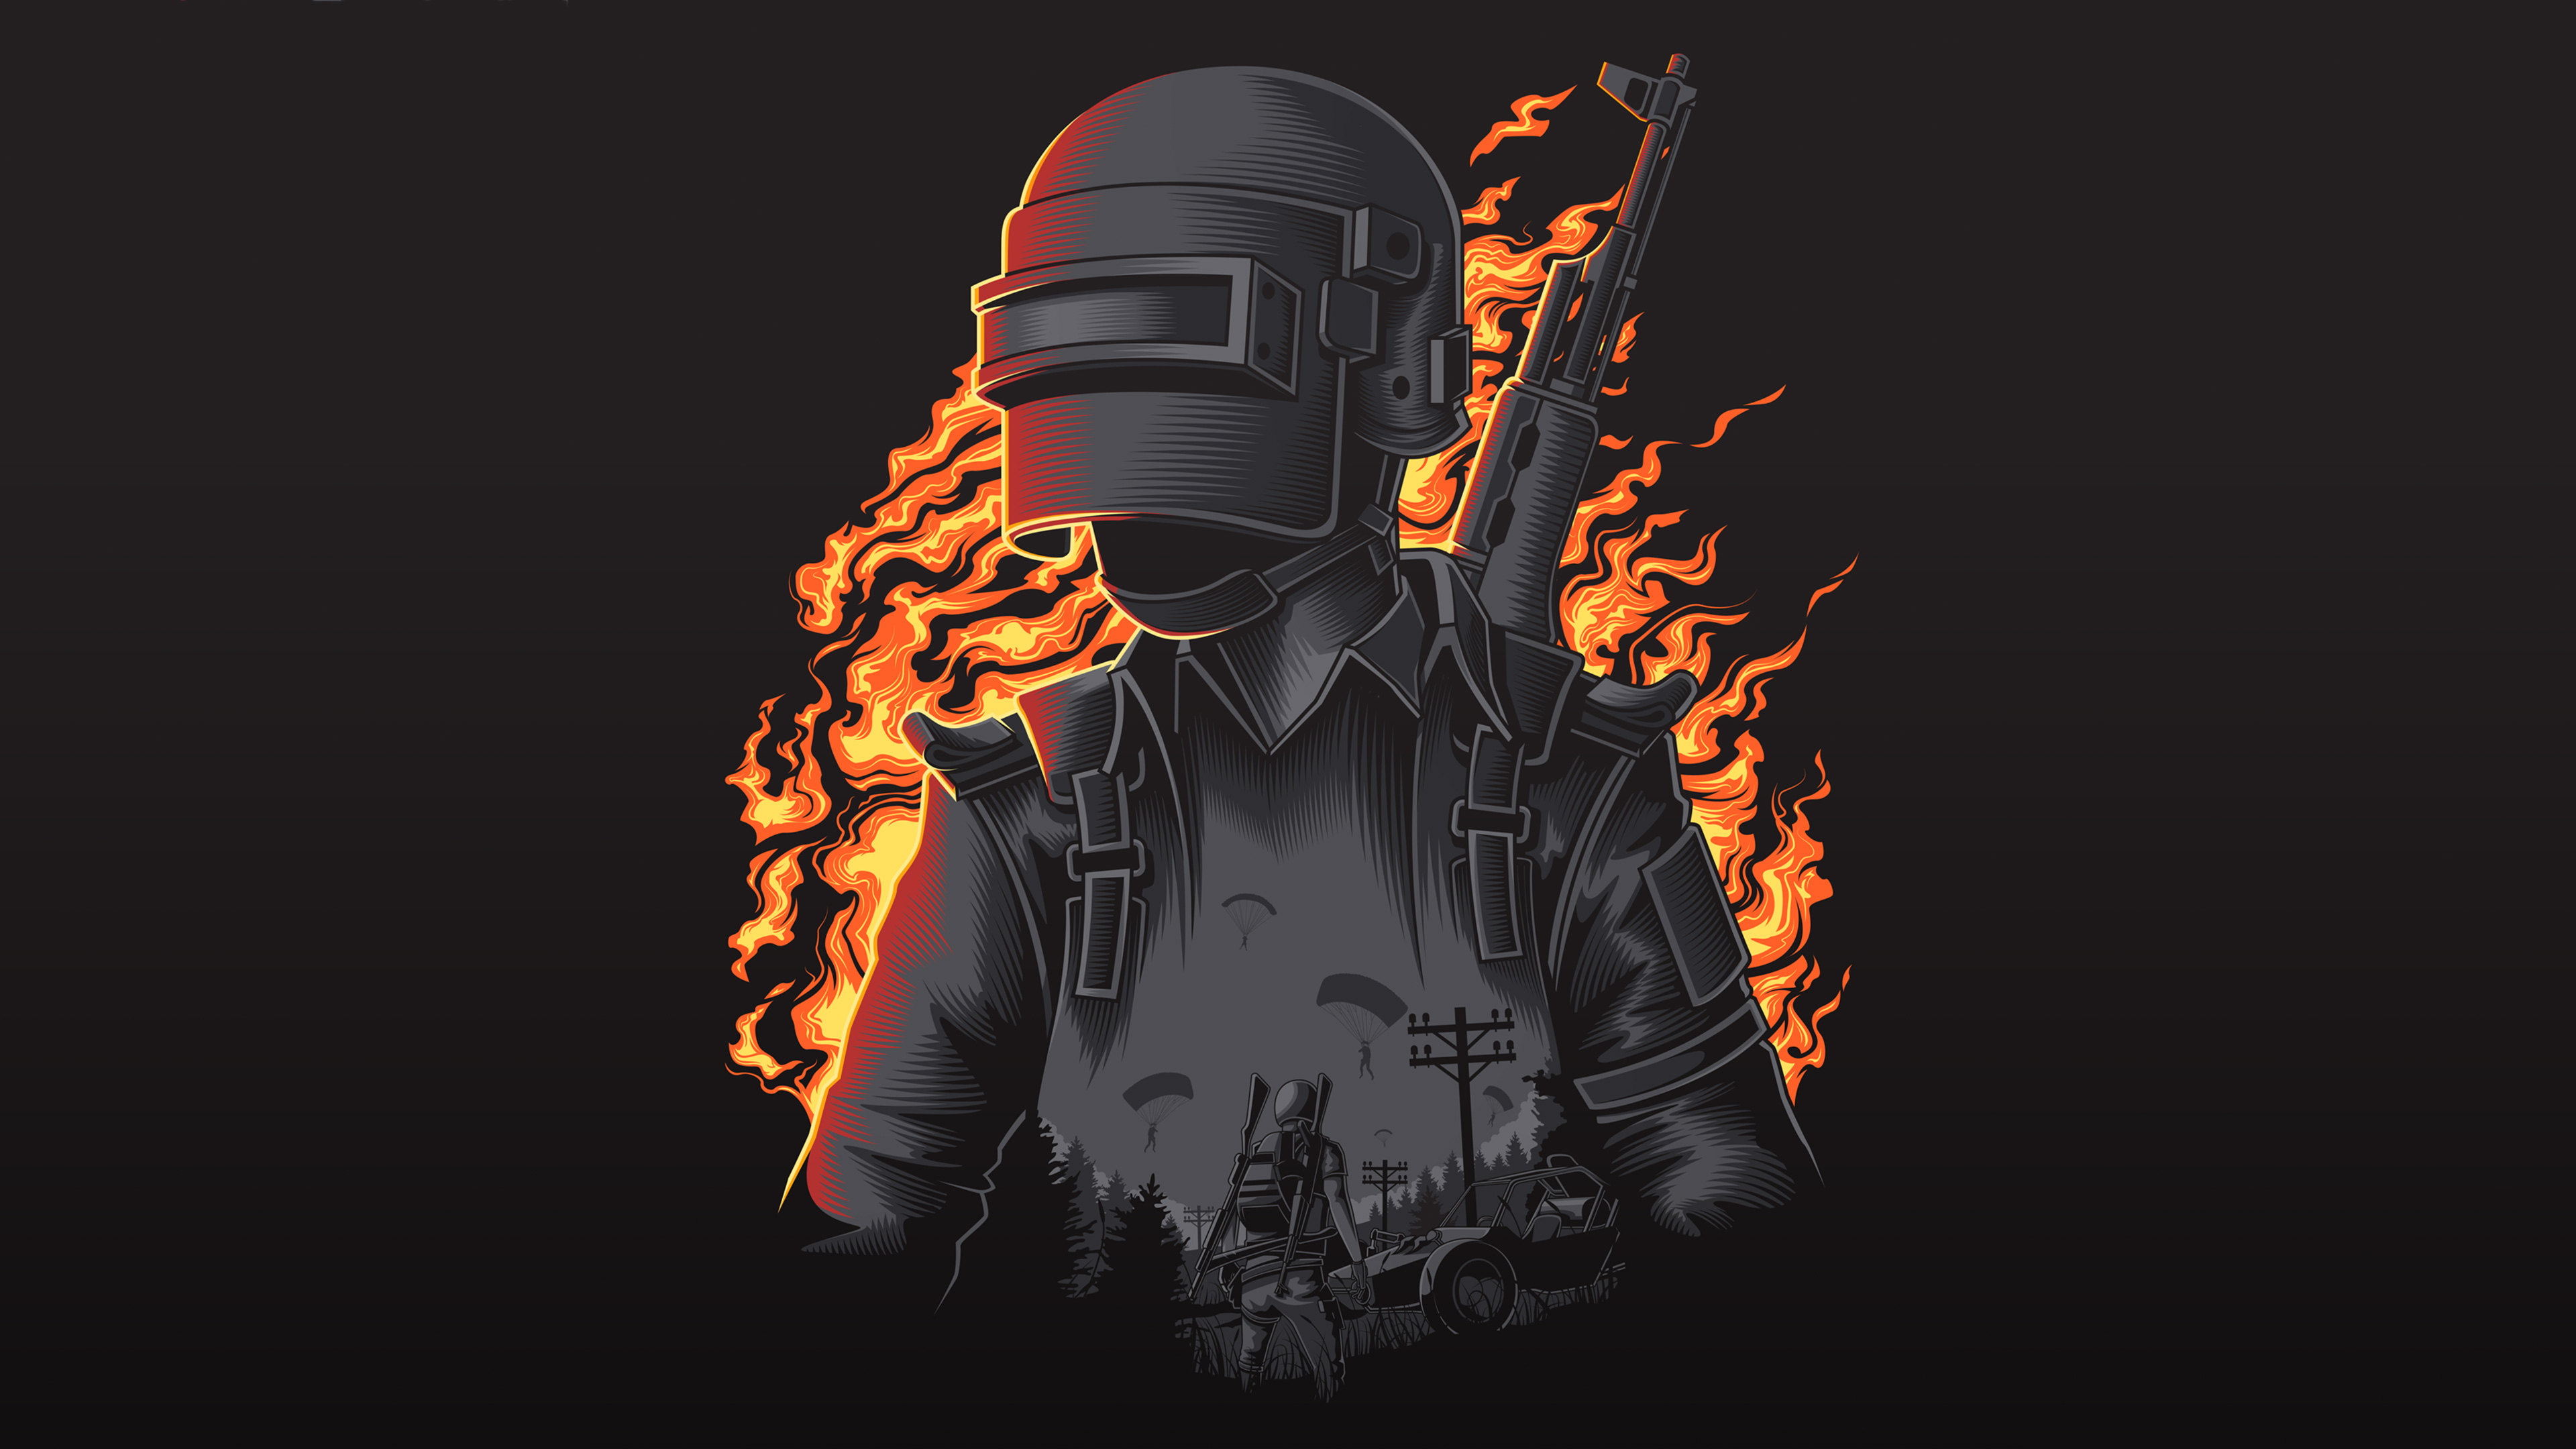 Pubg Best Hd Wallpapers Pubg: Pubg Illustration 4k, HD Games, 4k Wallpapers, Images